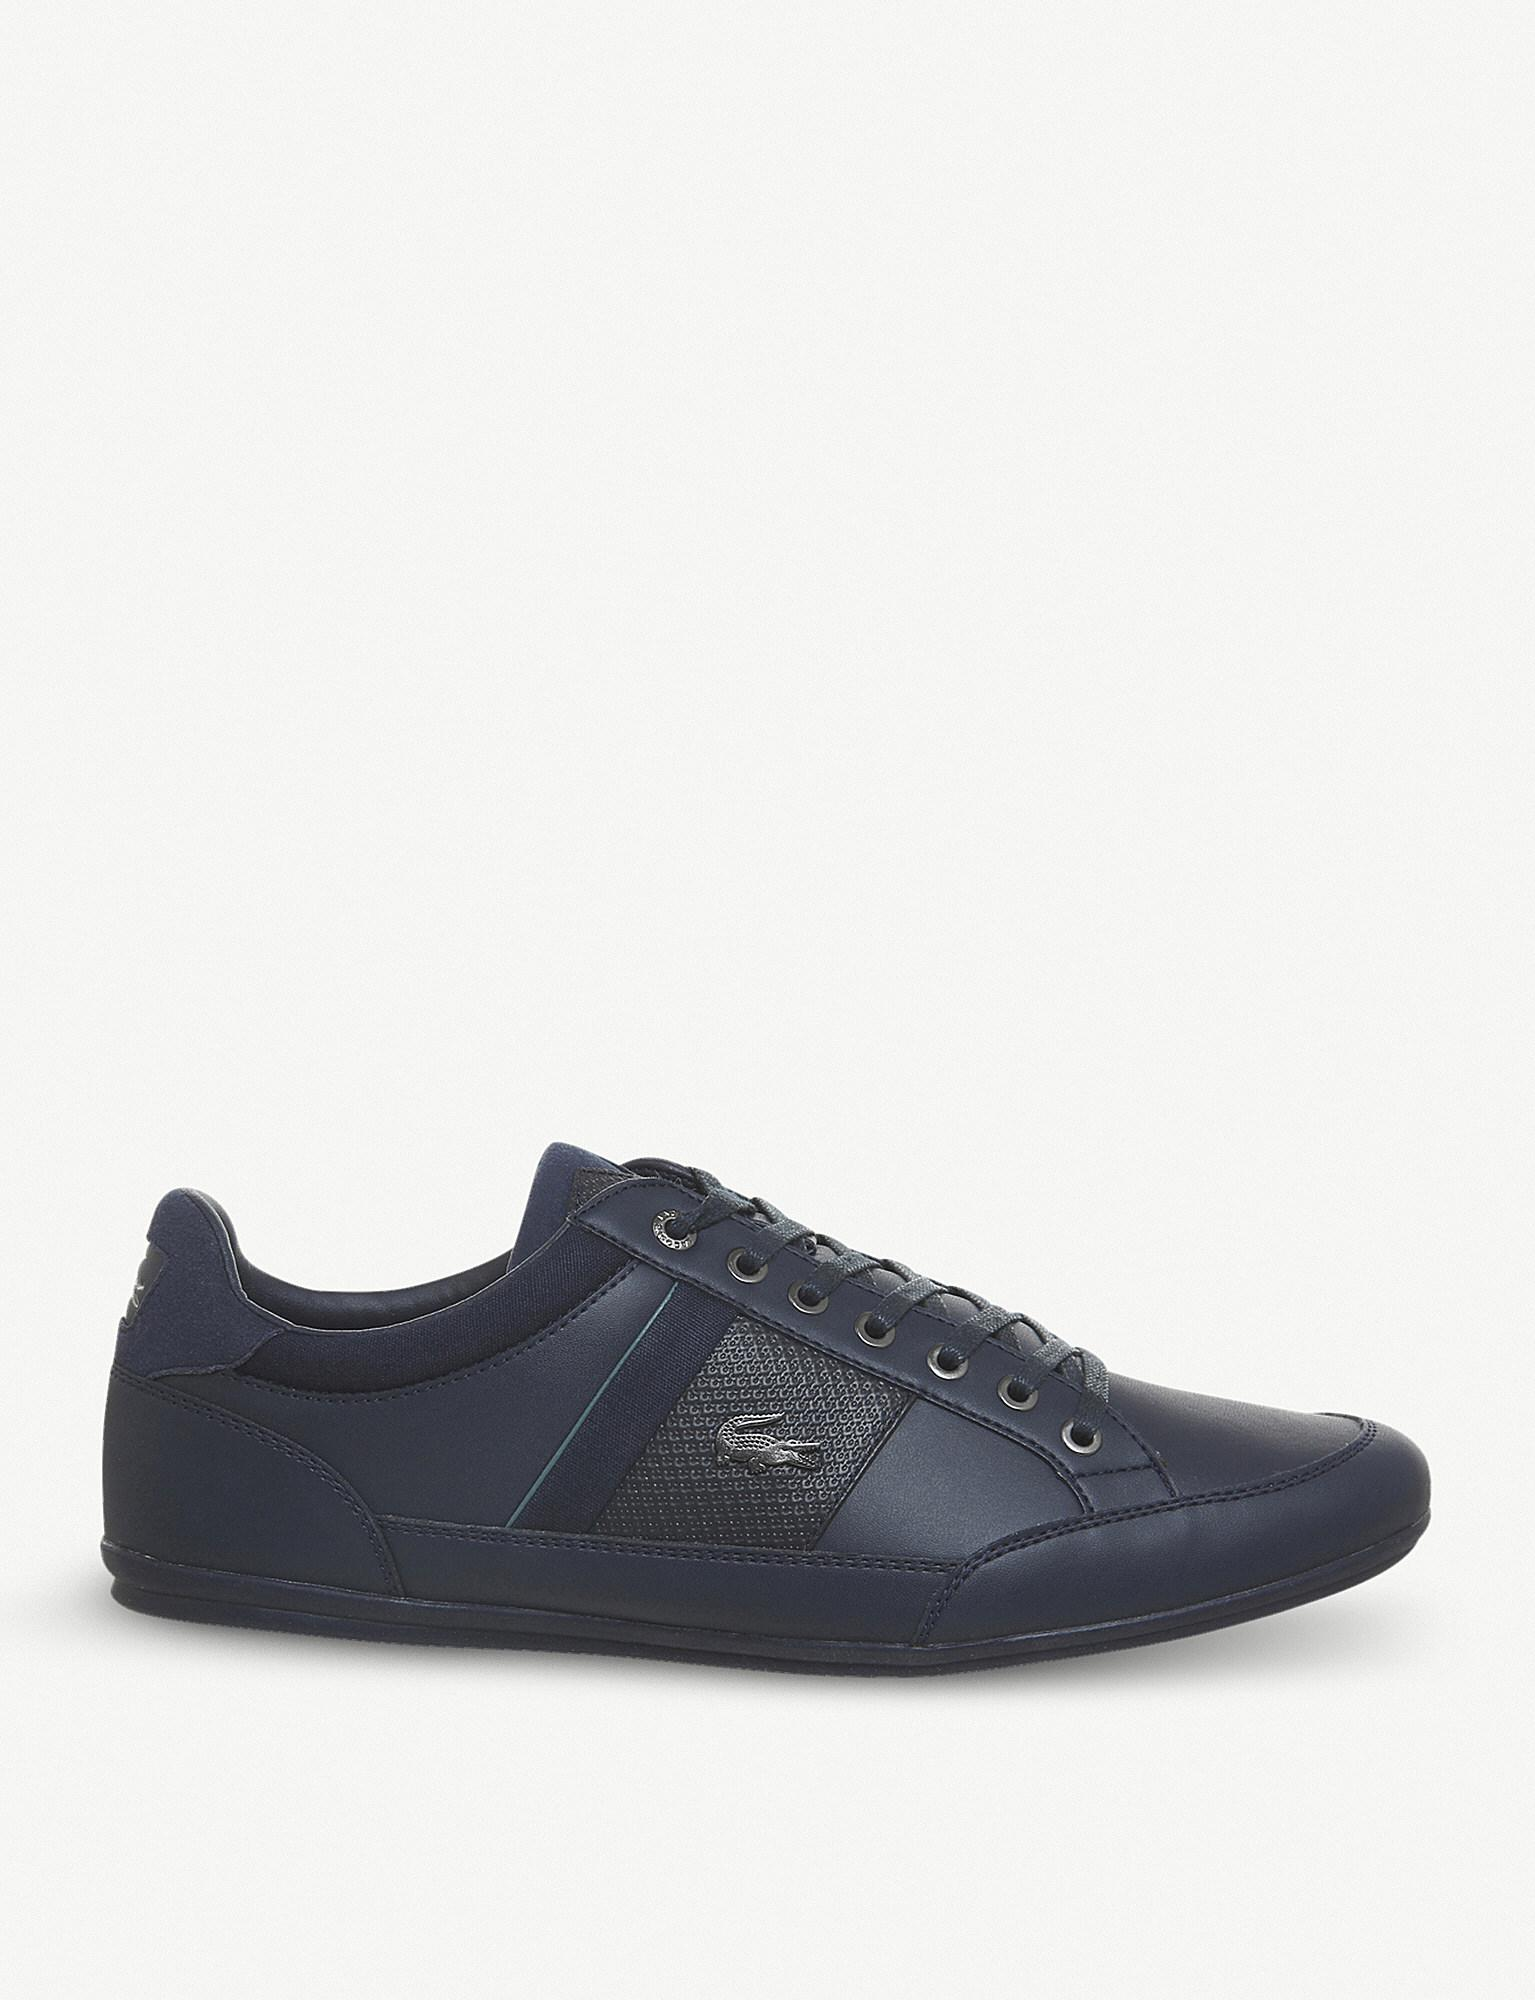 aa963b9cfc98b2 Lacoste Chaymon Low-top Leather Trainers in Blue for Men - Lyst